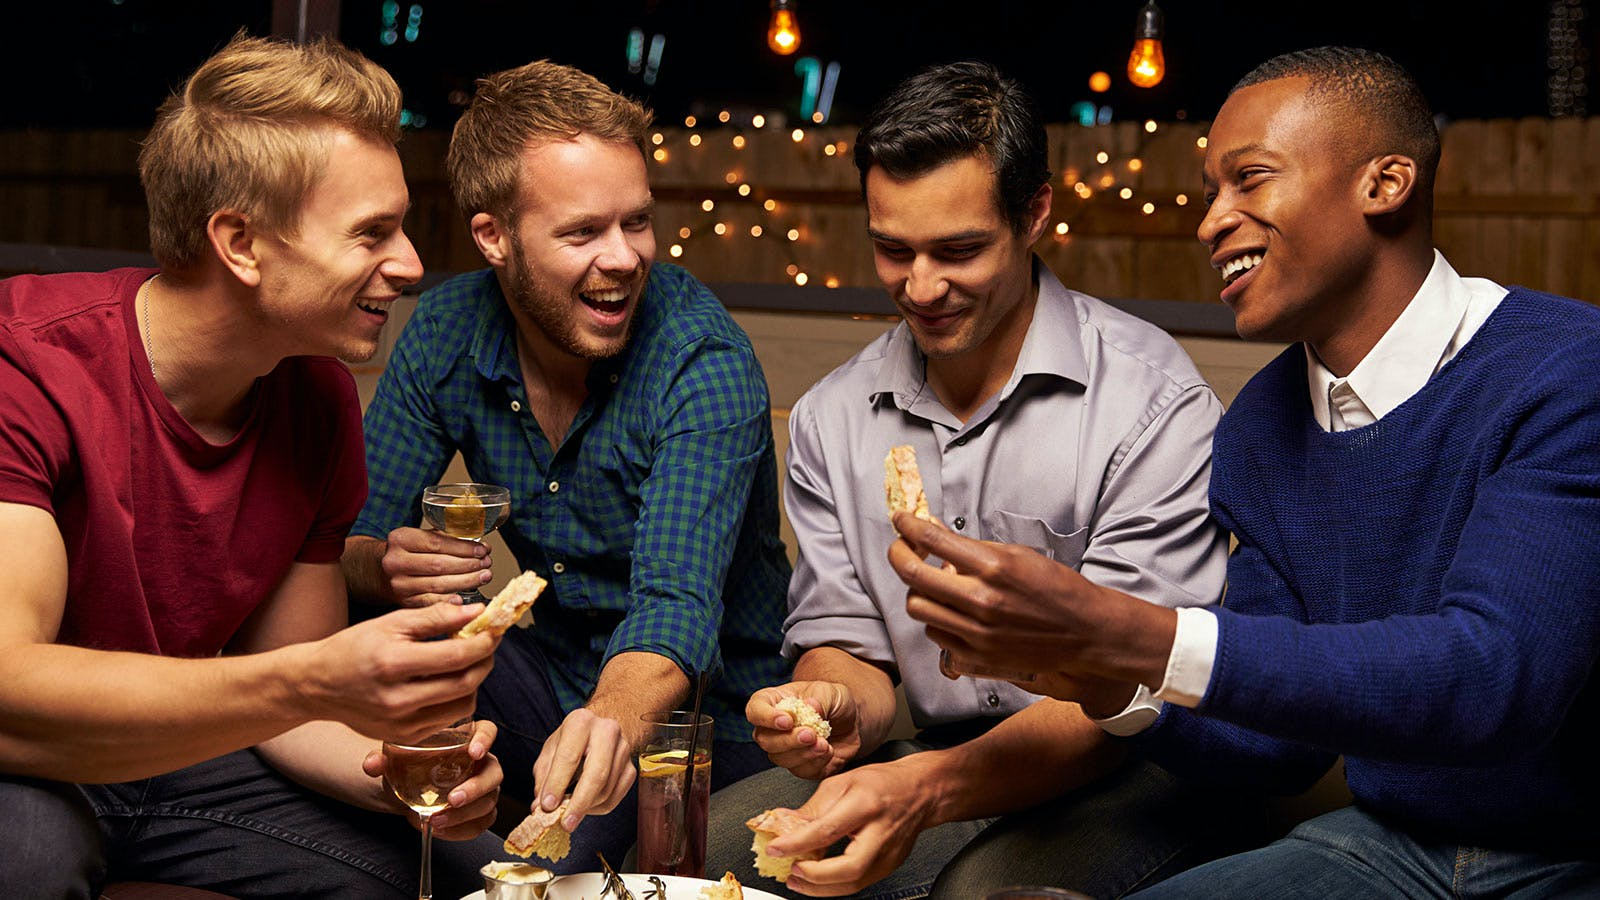 Does Moderate Wine Drinking Impact Male Fertility? New Research Says No